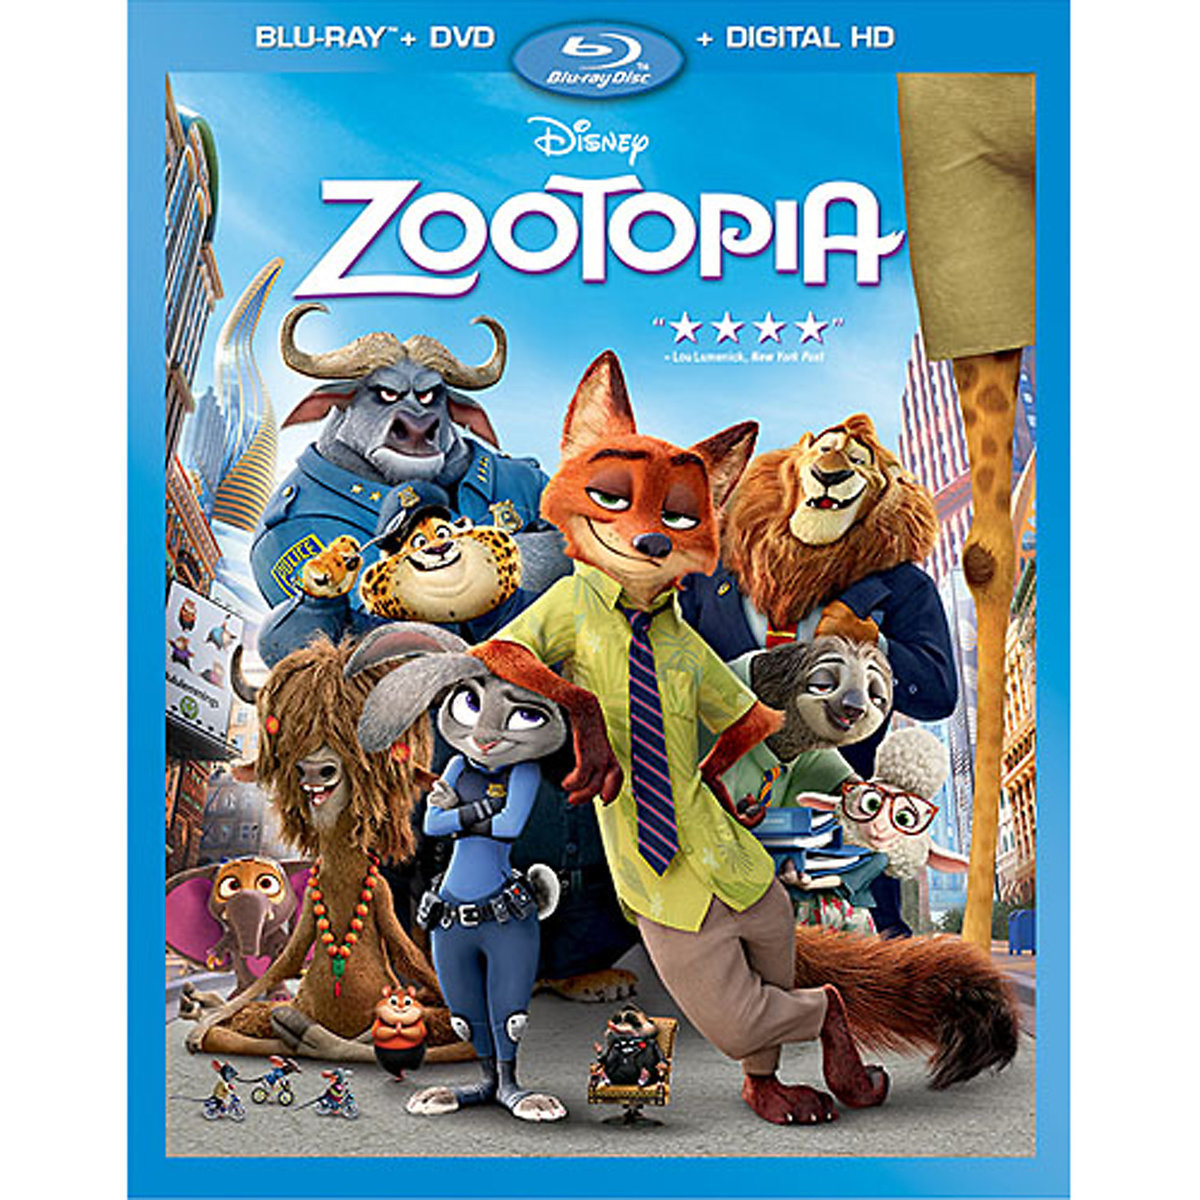 Zootopia (Blu-ray + DVD + Digital HD) 13512300